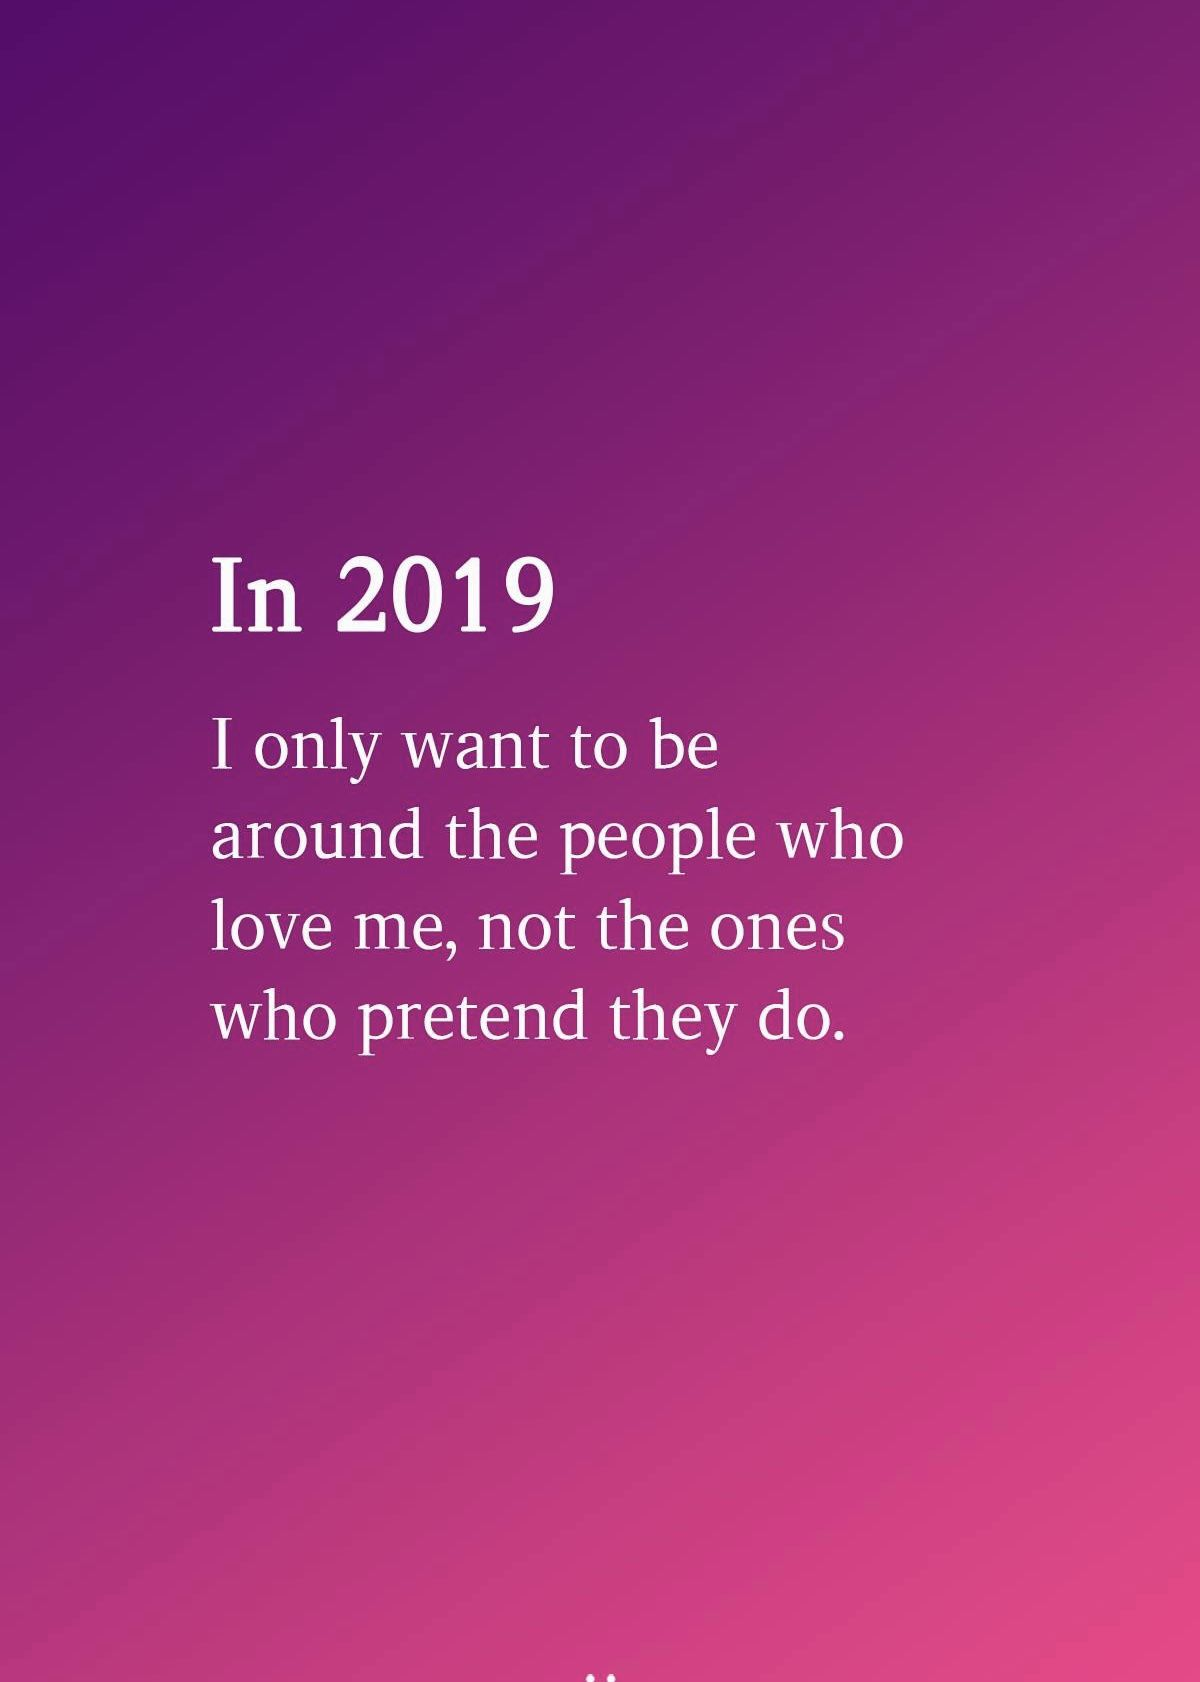 Omg Exactly Have Too Many People In 2018 Act Like They Were My Friend Or Even More But They Were All Liars Onl Quotes About New Year Friendship Quotes Words